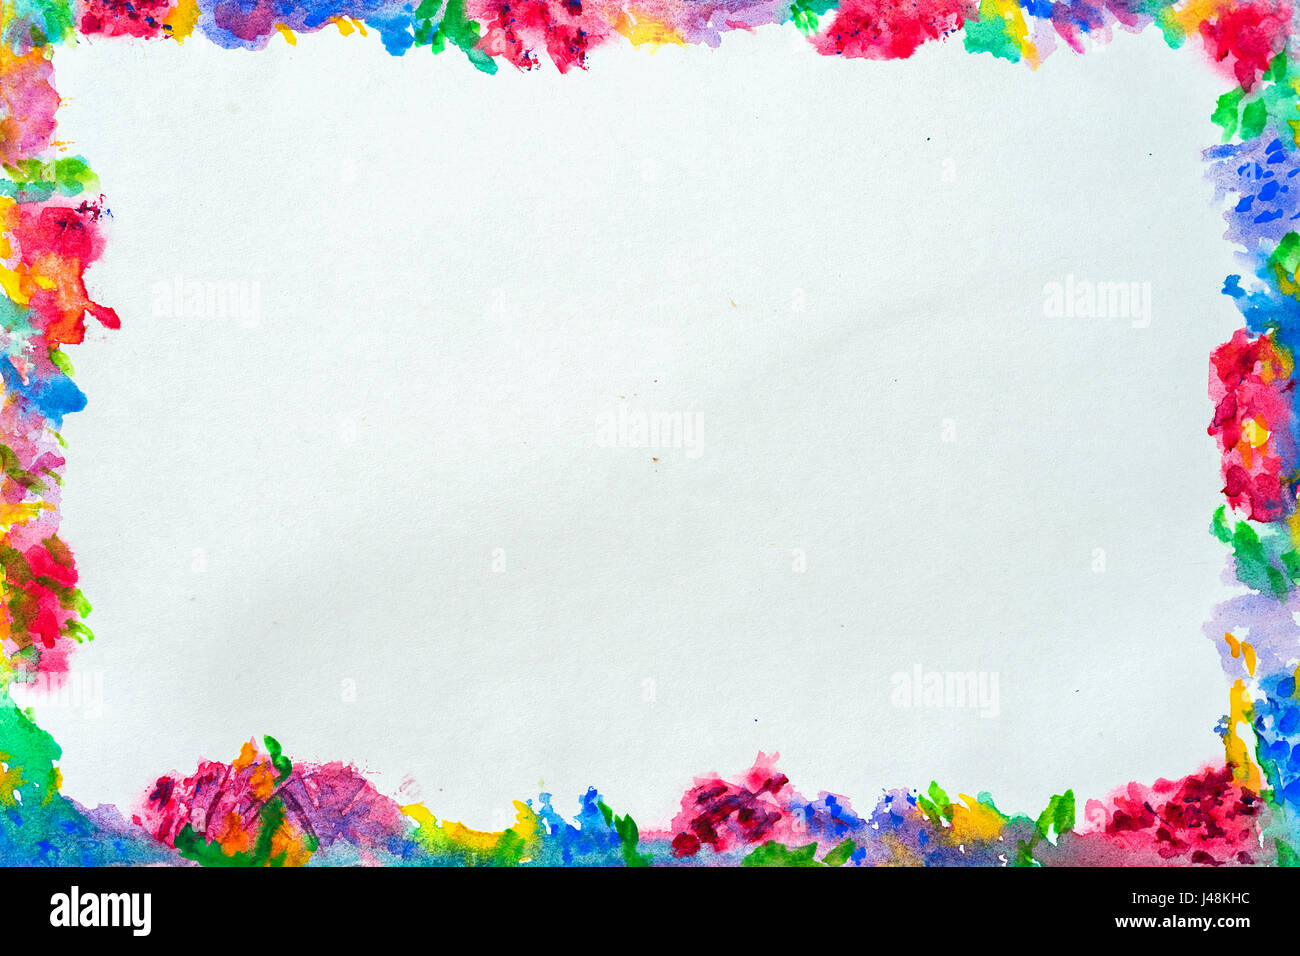 colorful border for text or banner card template design formed